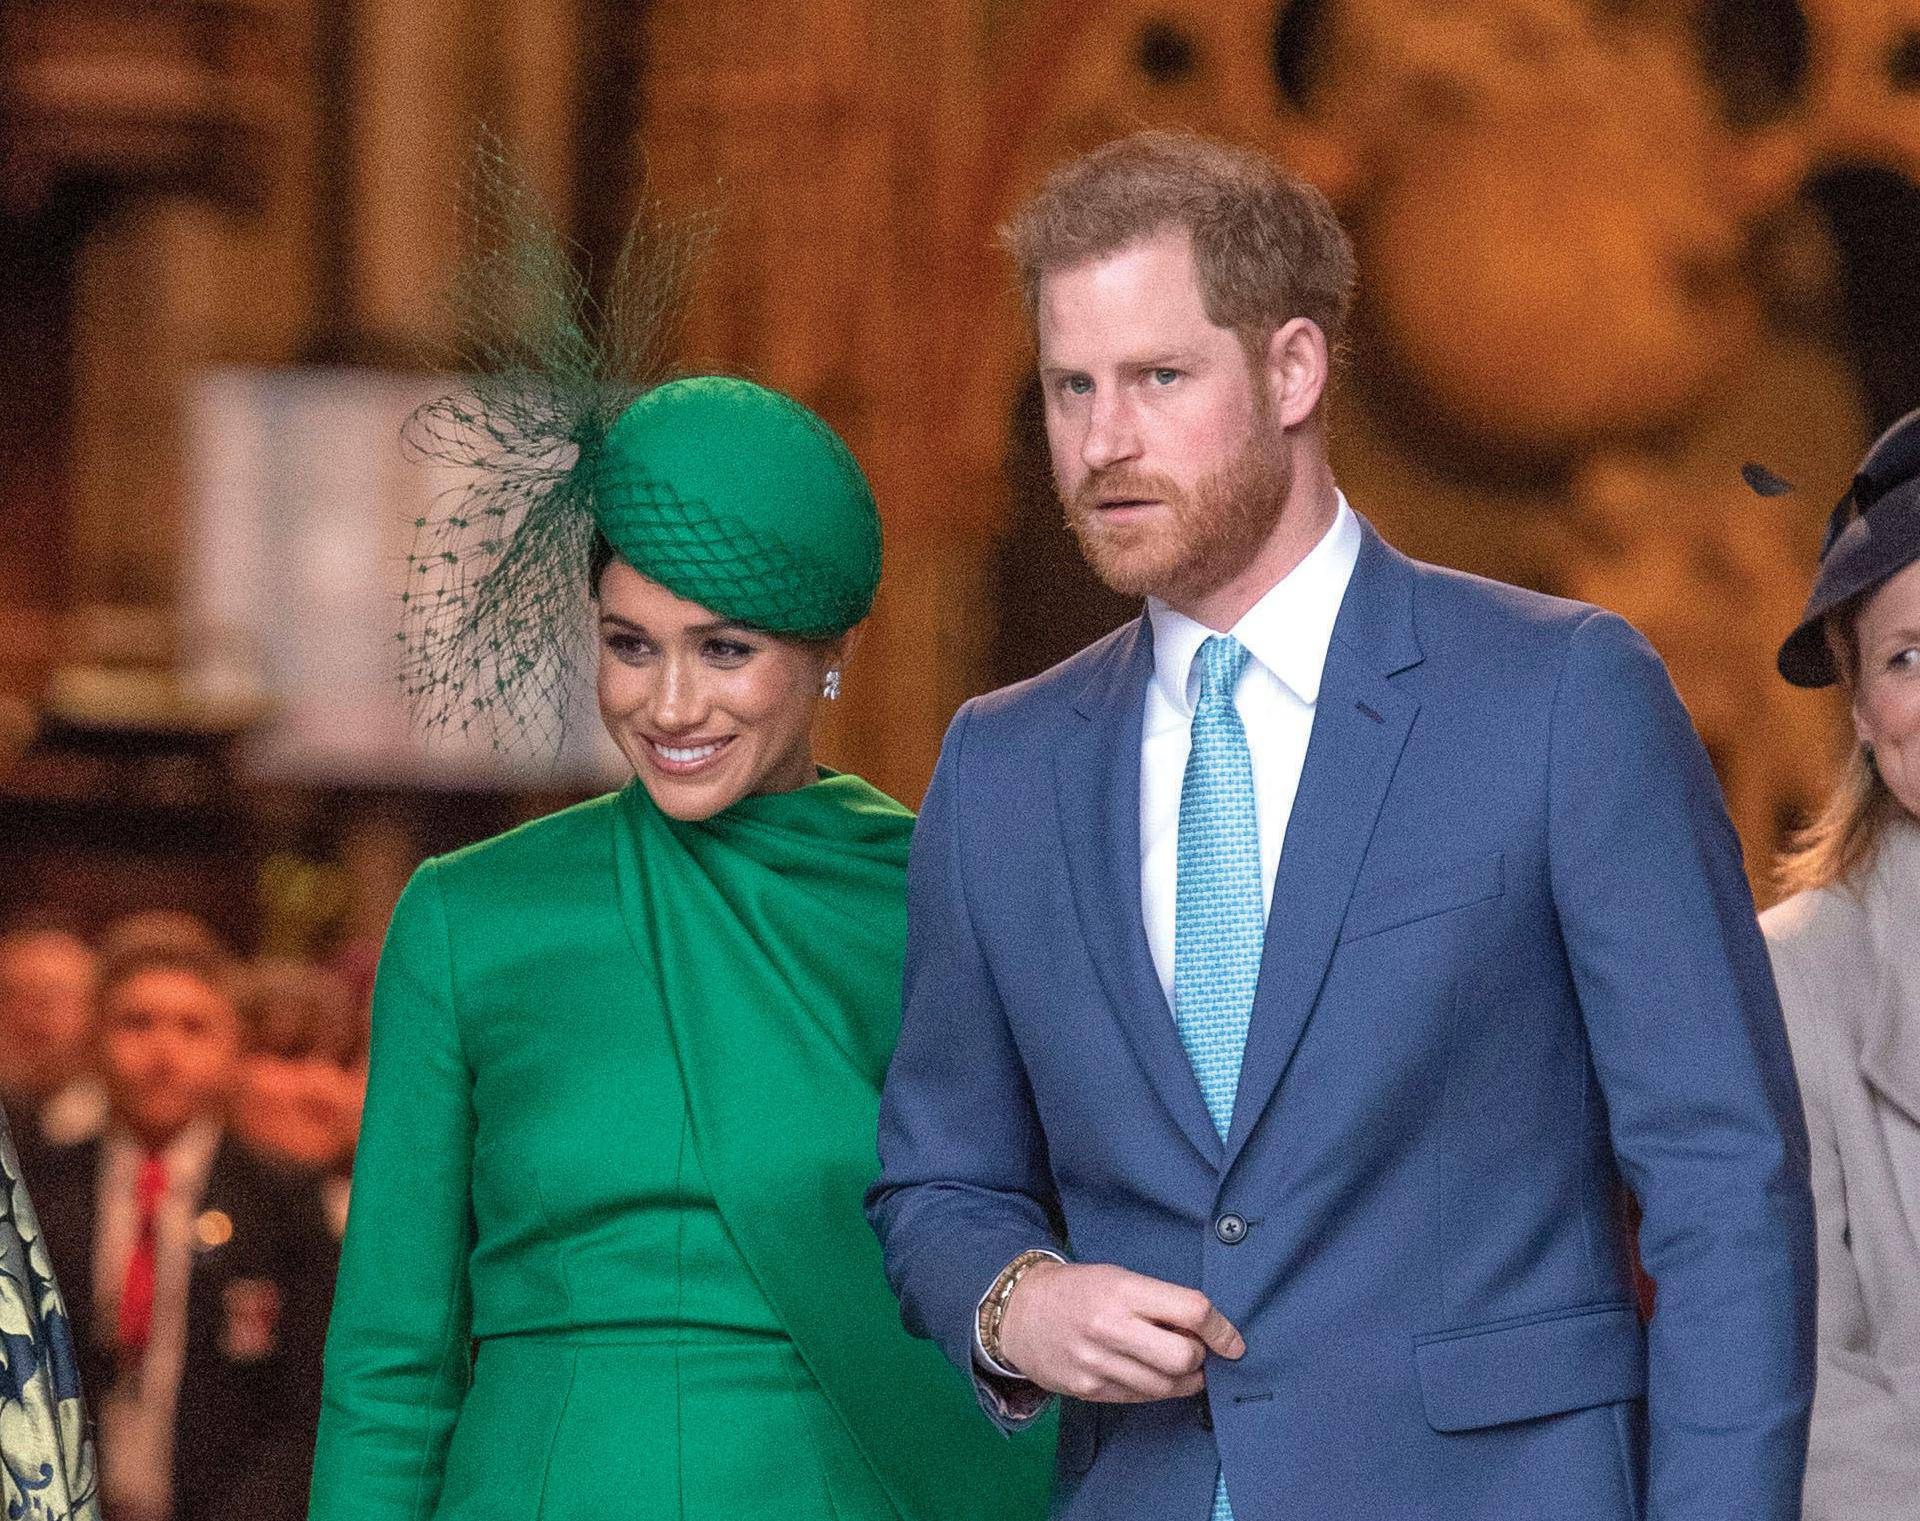 Members Of The Royal Family Attend The Commonwealth Service At Westminster Abbey